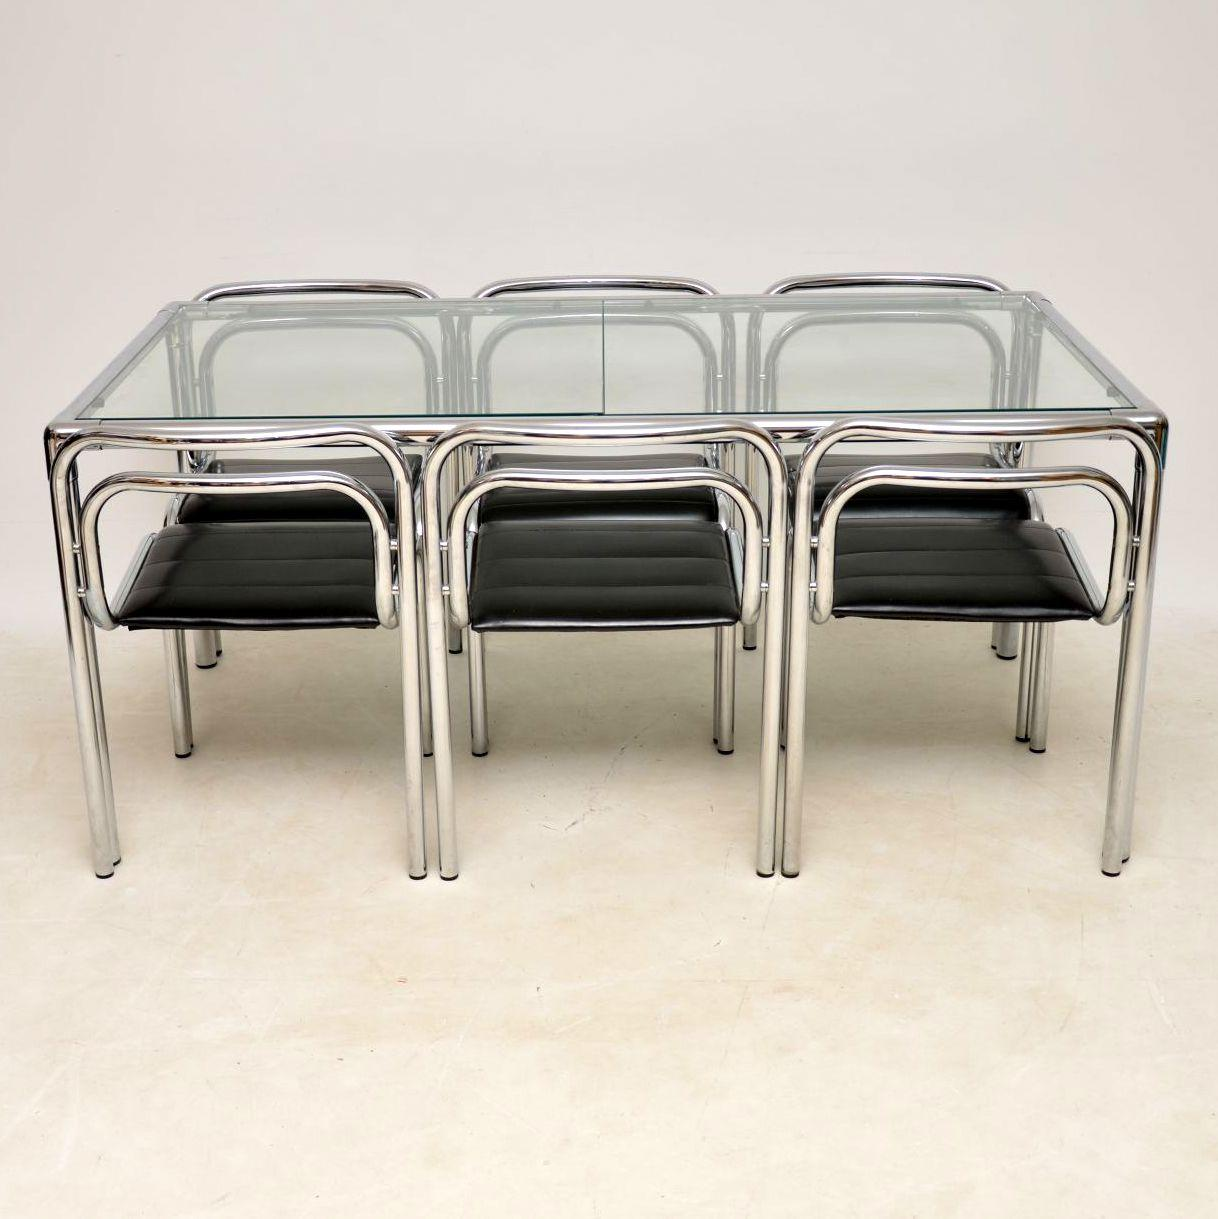 An incredibly stylish and very rare vintage dining table and six chairs designed by Rodney Kinsman & 1960s Vintage Chrome Dining Table and Chairs by Rodney Kinsman for ...